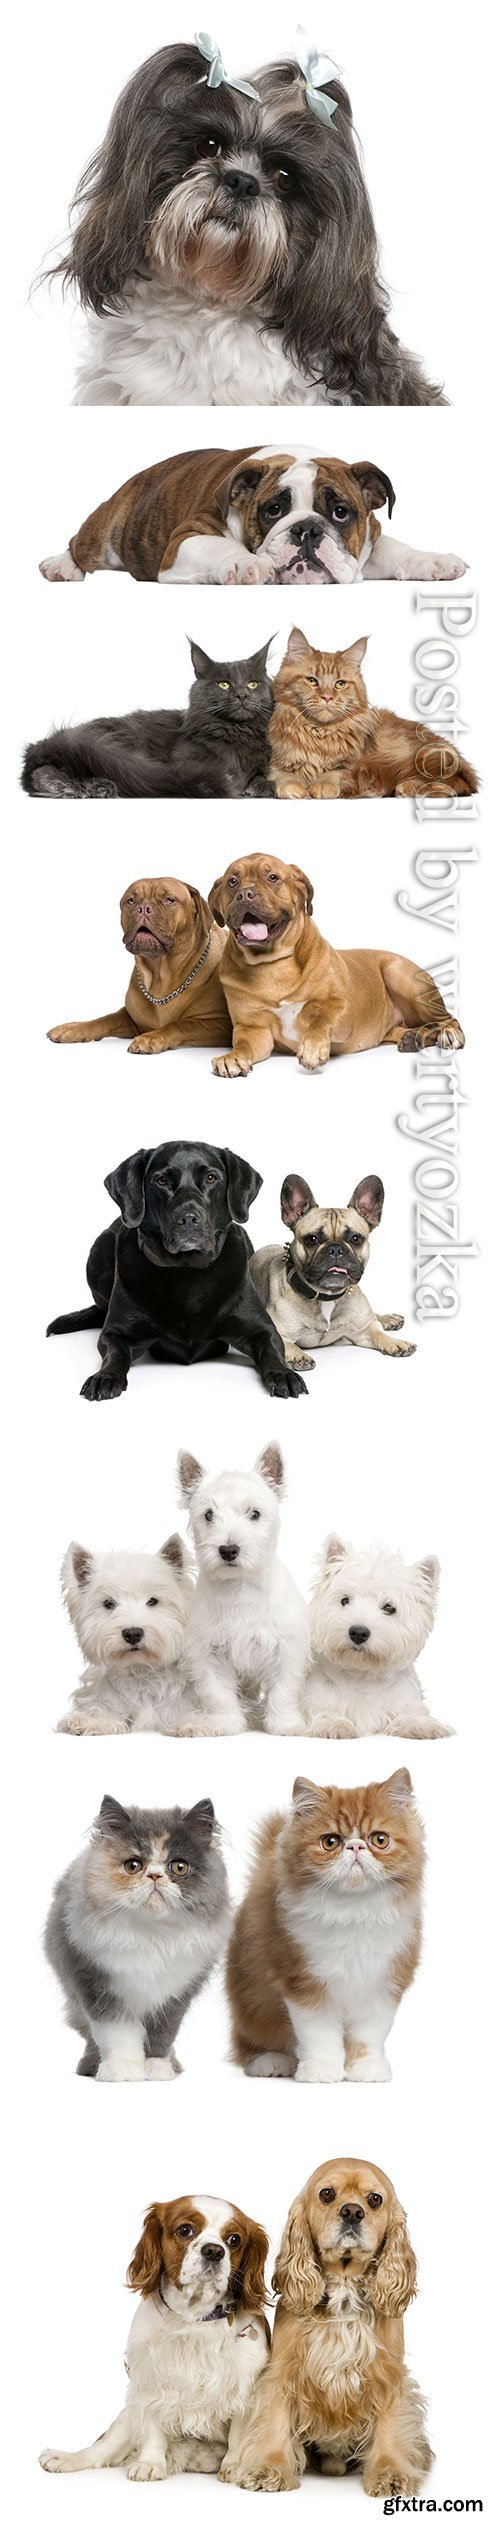 Purebred cats and dogs